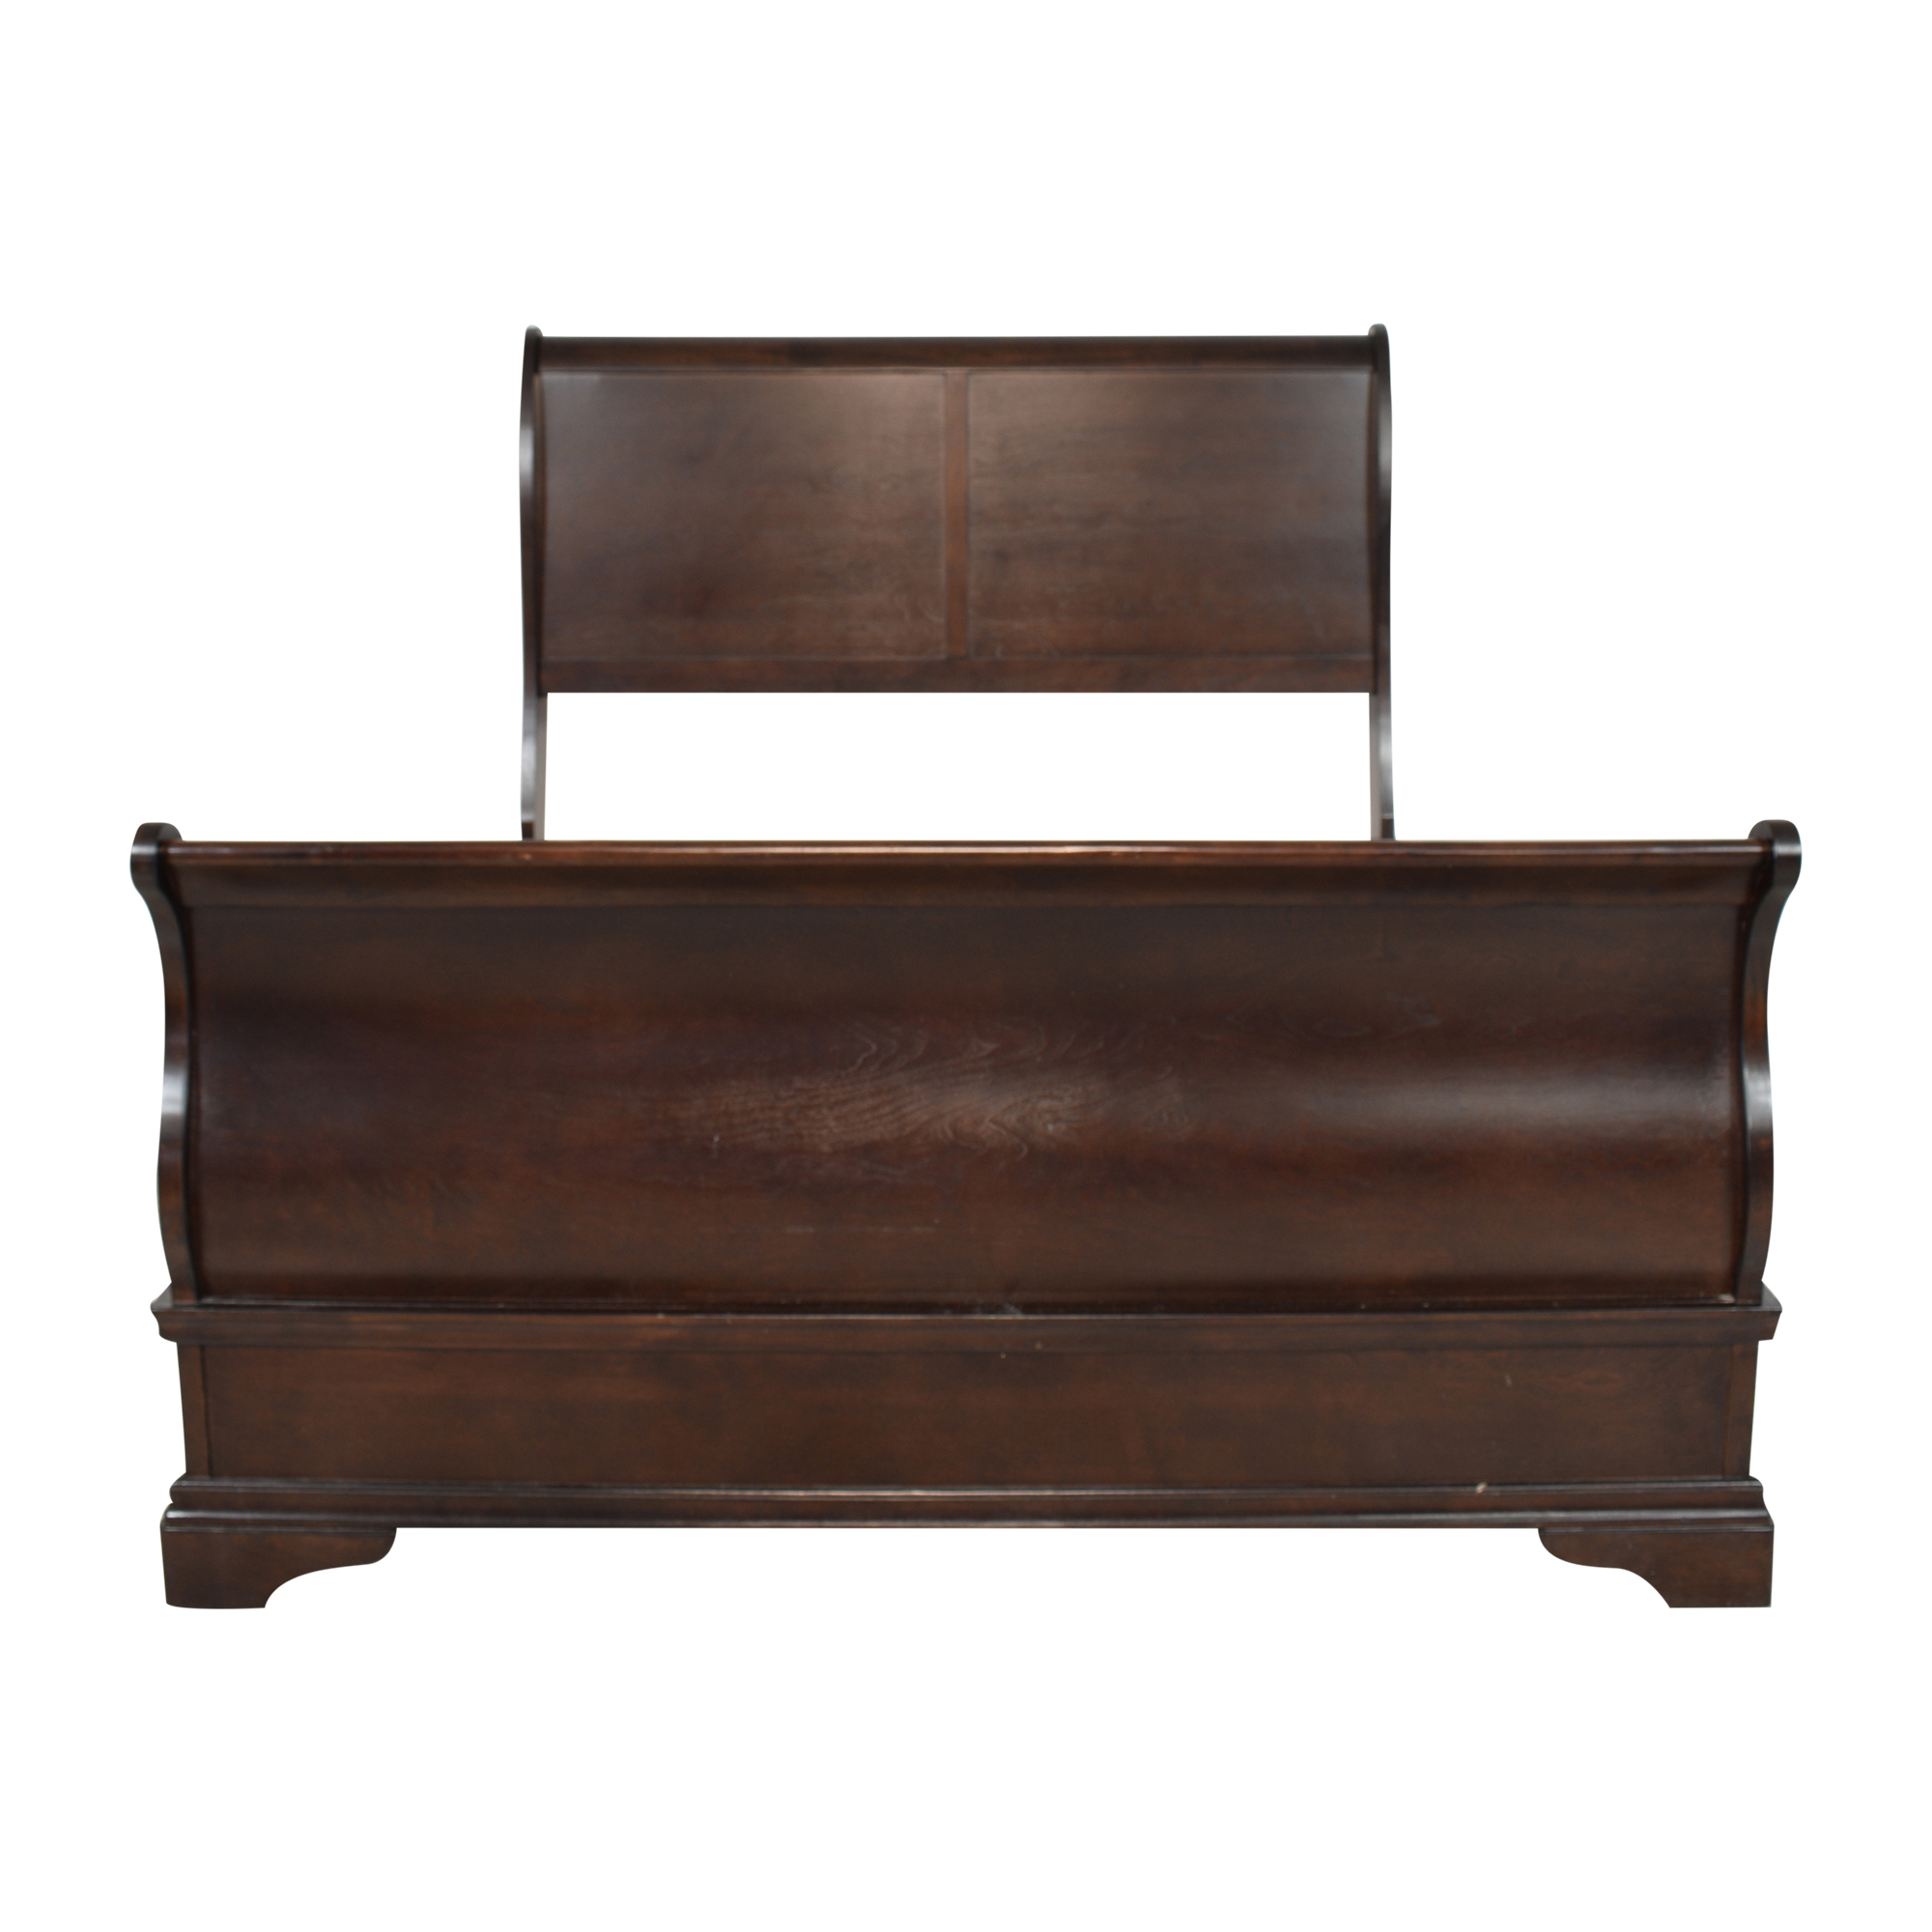 buy Raymour & Flanigan Charleston Queen Sleigh Bed Raymour & Flanigan Beds